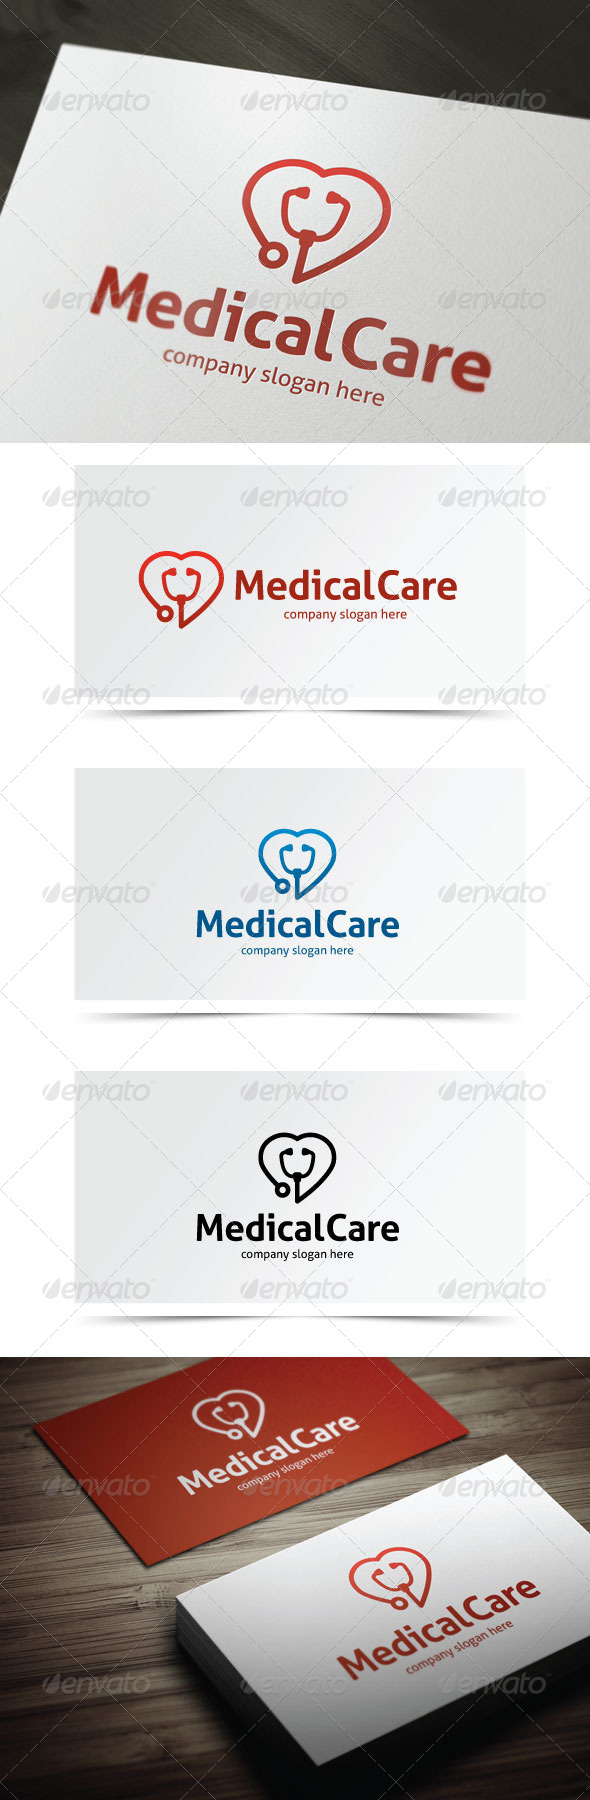 GraphicRiver Medical Care 5682358